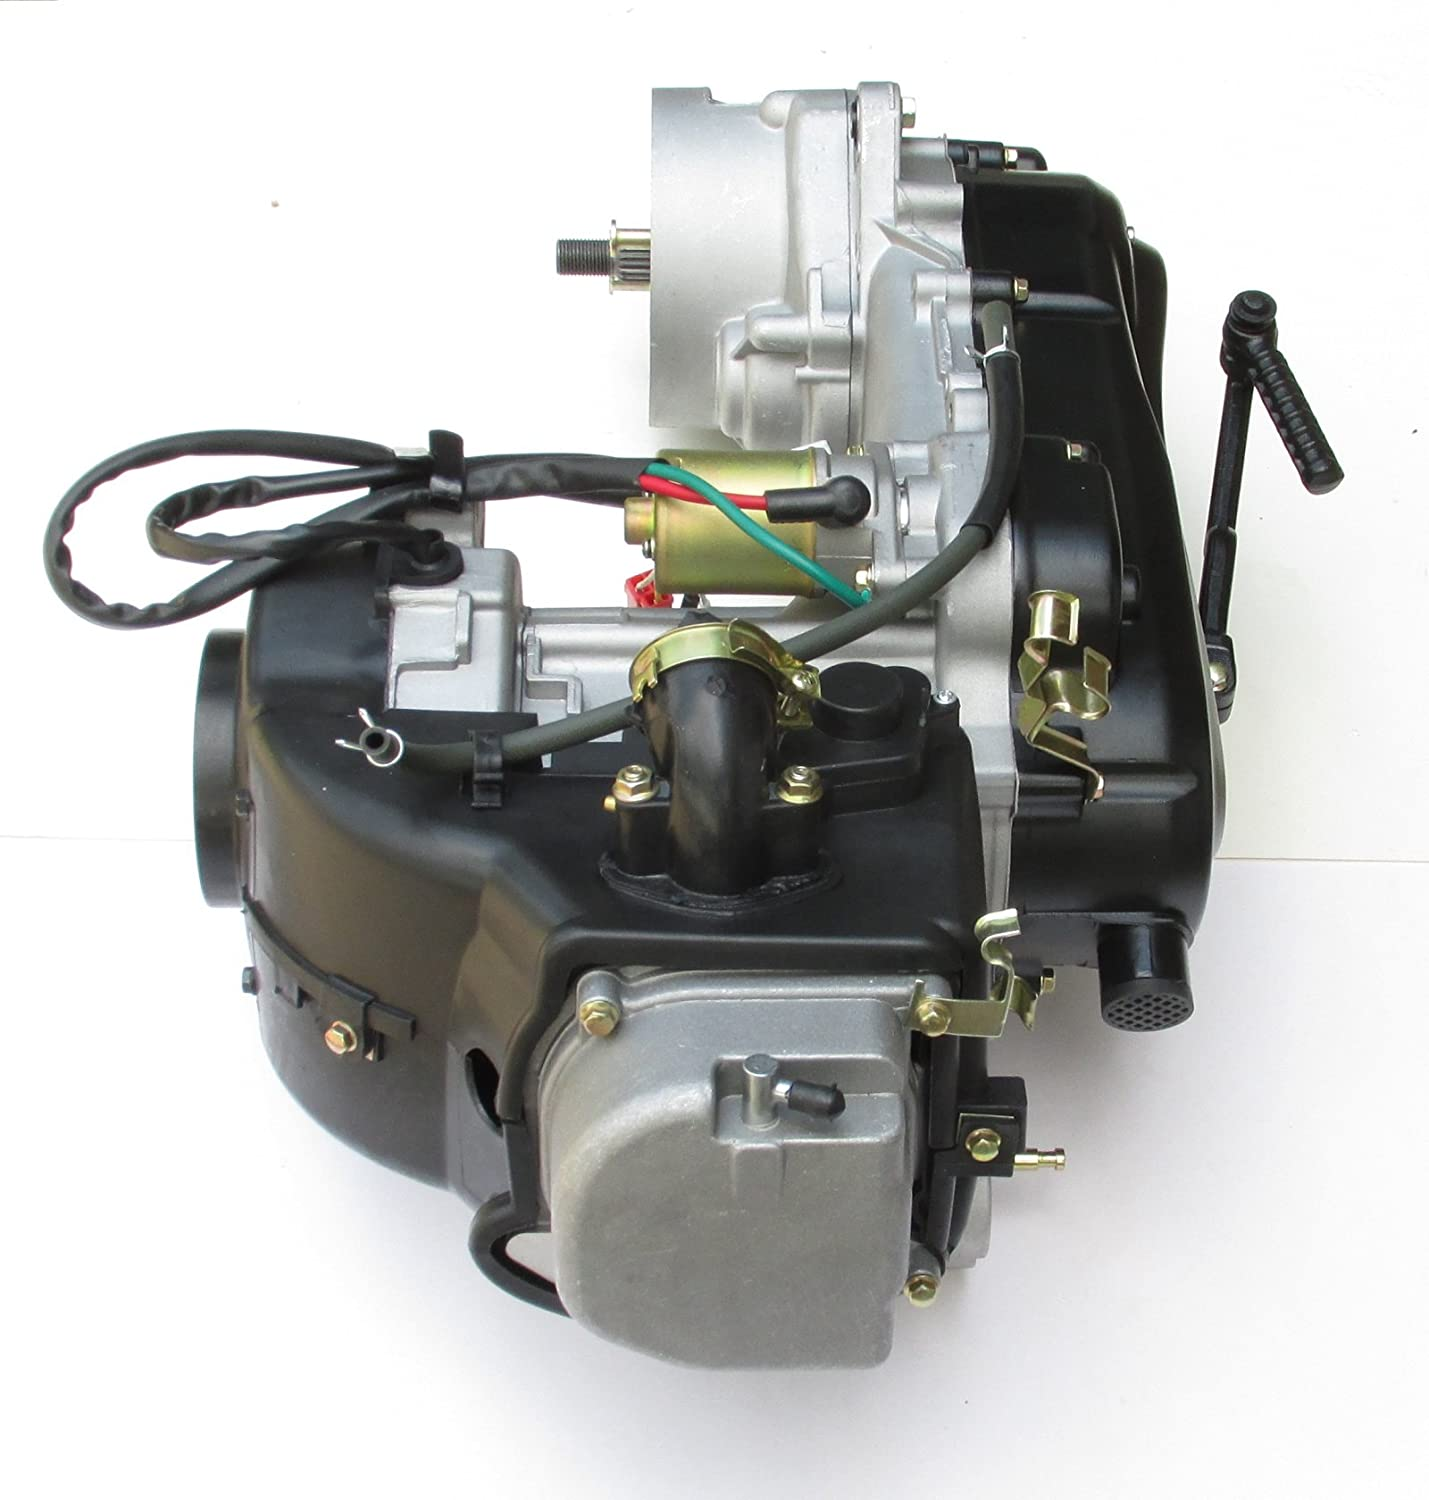 Brand New GY6 50cc 4-Stroke Short Case Engine 1P39QMB CVT QMB139 Scooter Peace Jonway Moped